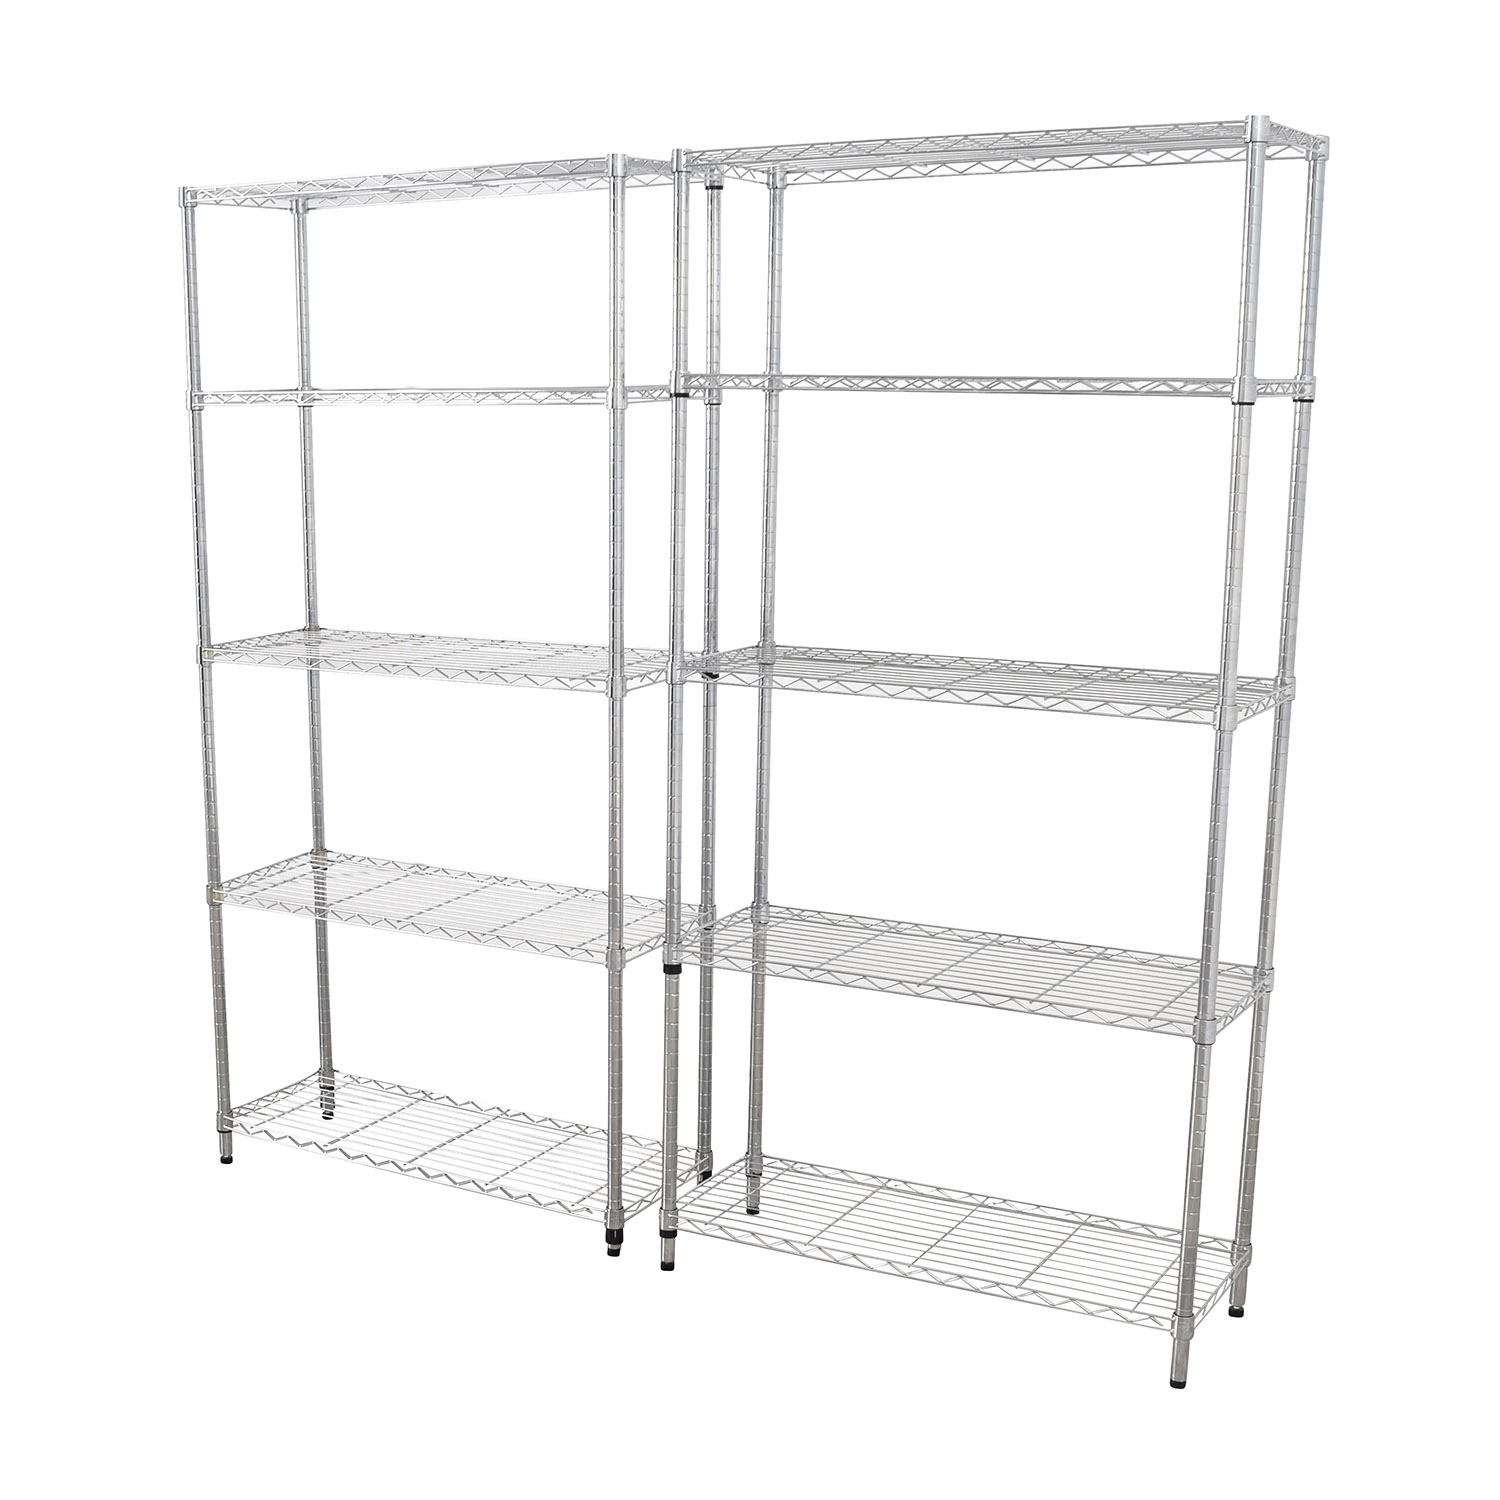 Home Depot Home Depot Chrome Five-Shelf Units discount